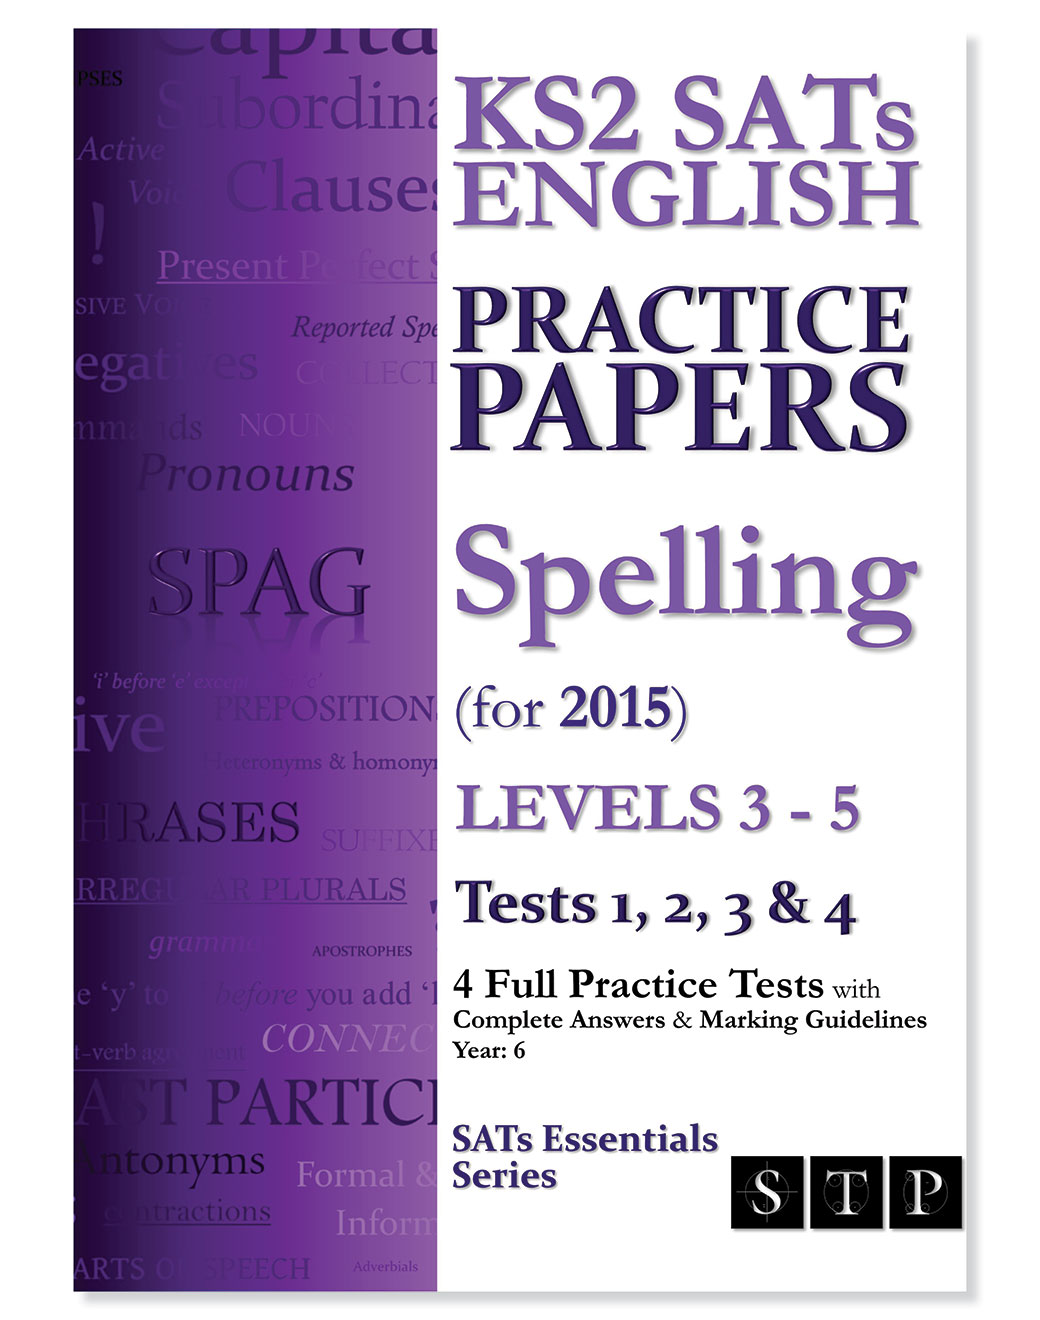 STP Books KS2 SATs English Practice Papers: Spelling (for 2015) Levels 3 - 5: Tests 1, 2, 3 & 4 (Year 6)